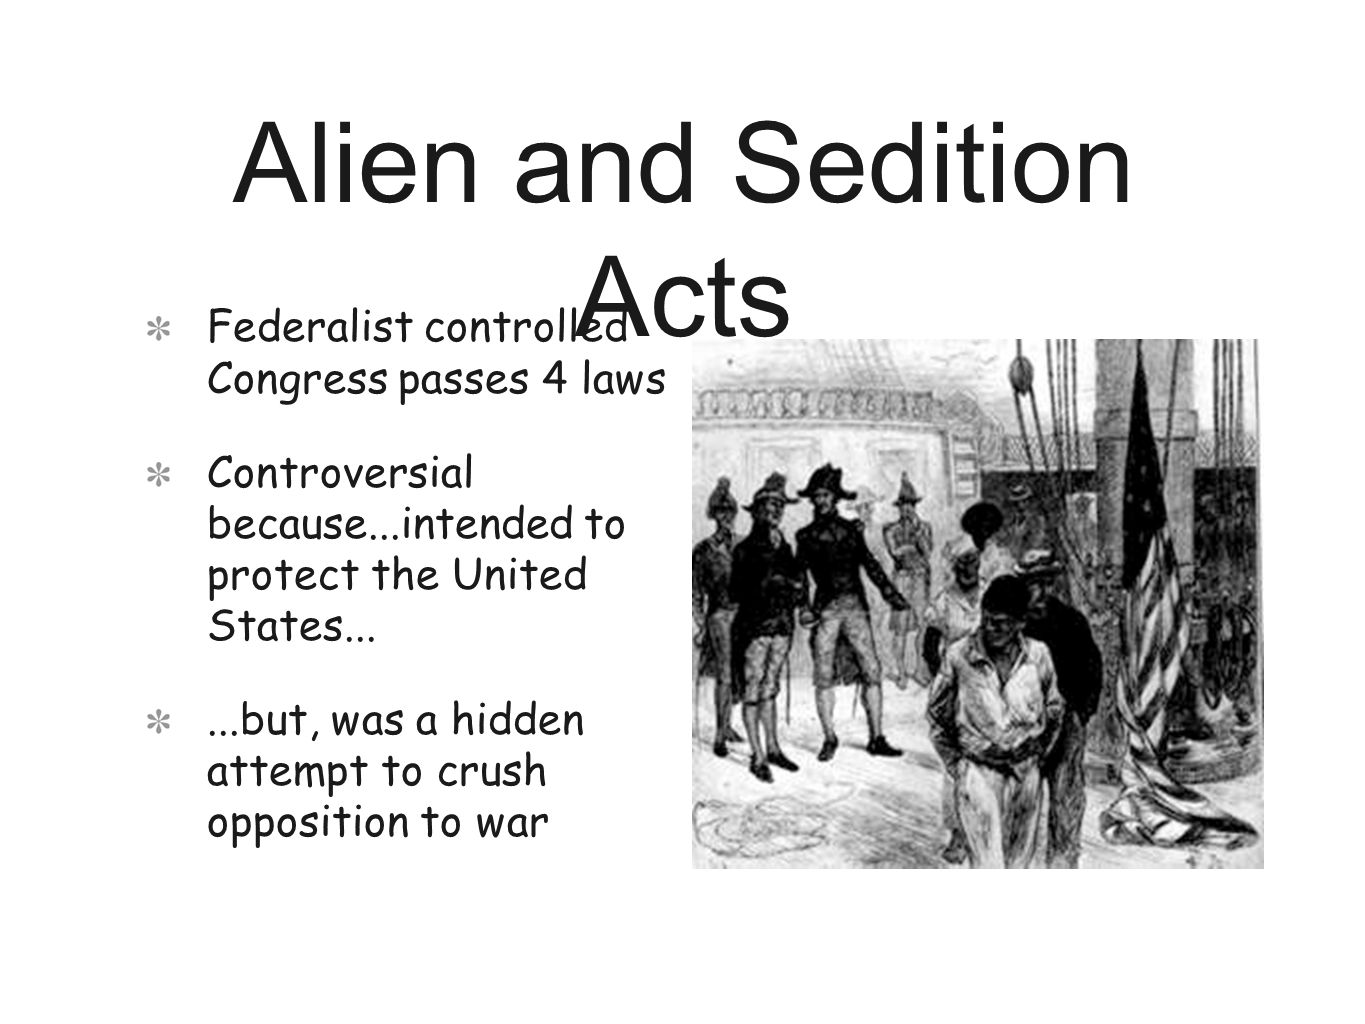 Alien and Sedition Acts Federalist controlled Congress passes 4 laws Controversial because...intended to protect the United States......but, was a hidden attempt to crush opposition to war